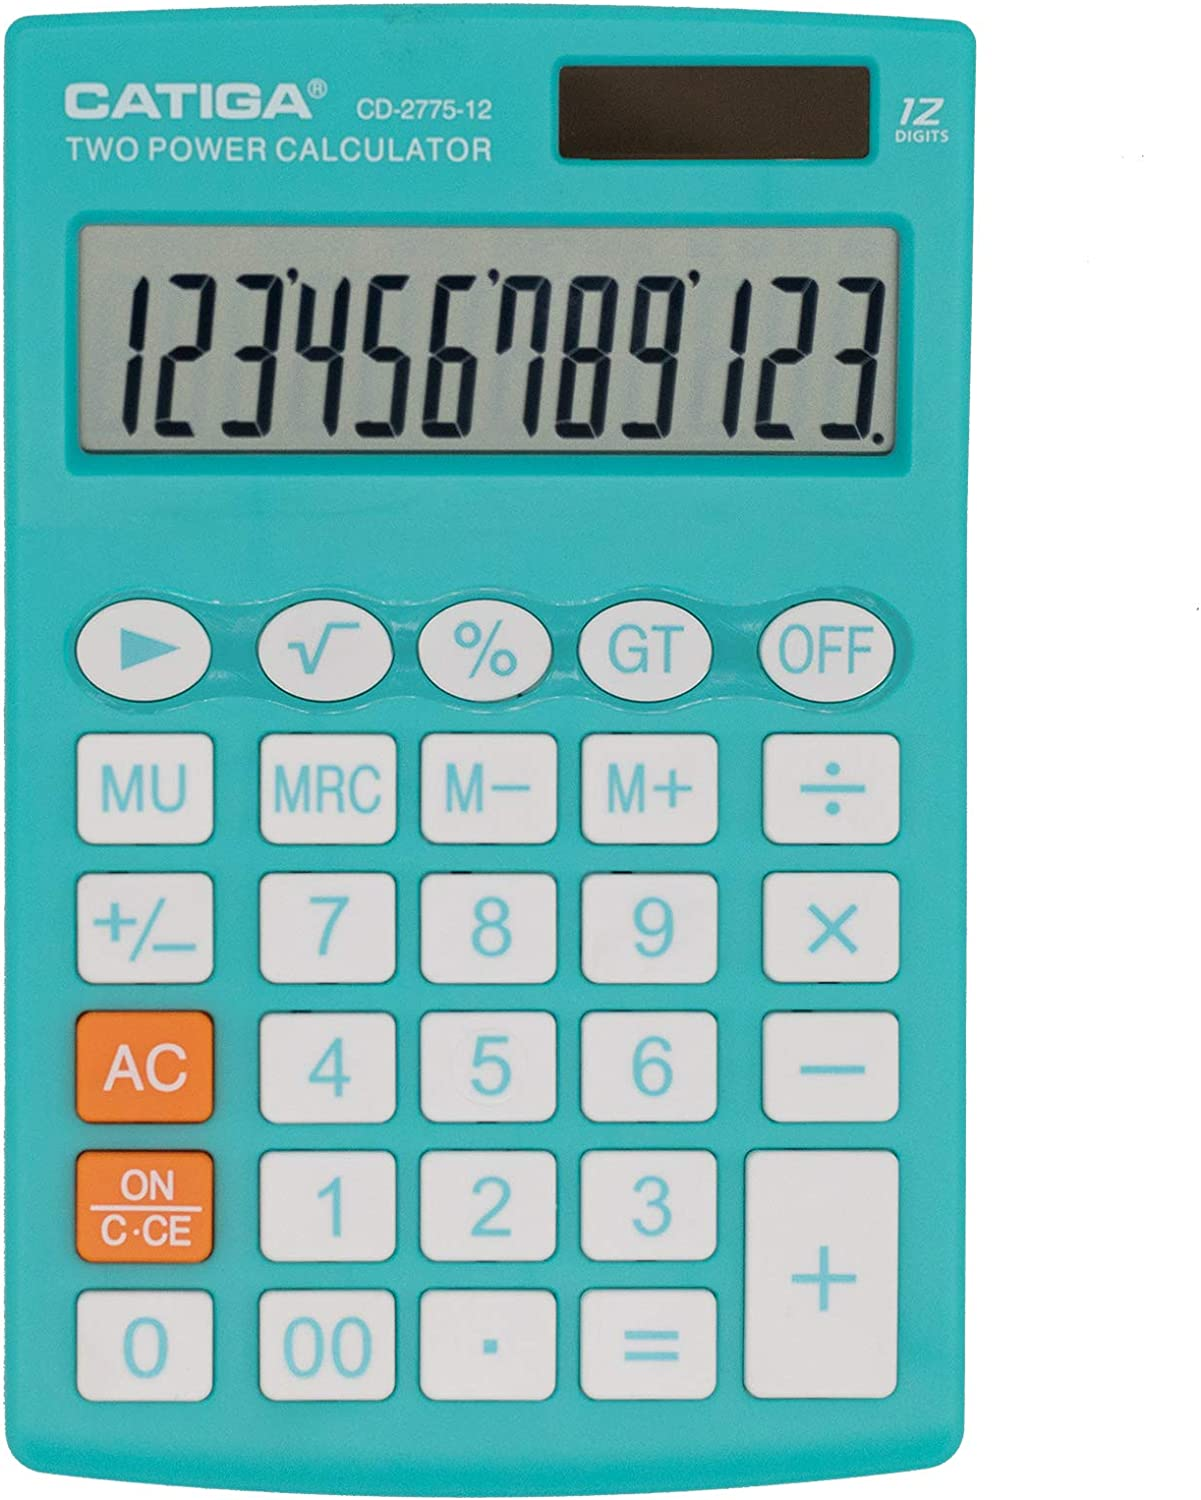 Desktop Calculator with 12 Digit LCD Display Screen, Home or Office Use, Easy to use with Clear Display/Memory Functions, CD-2775 (Teal)